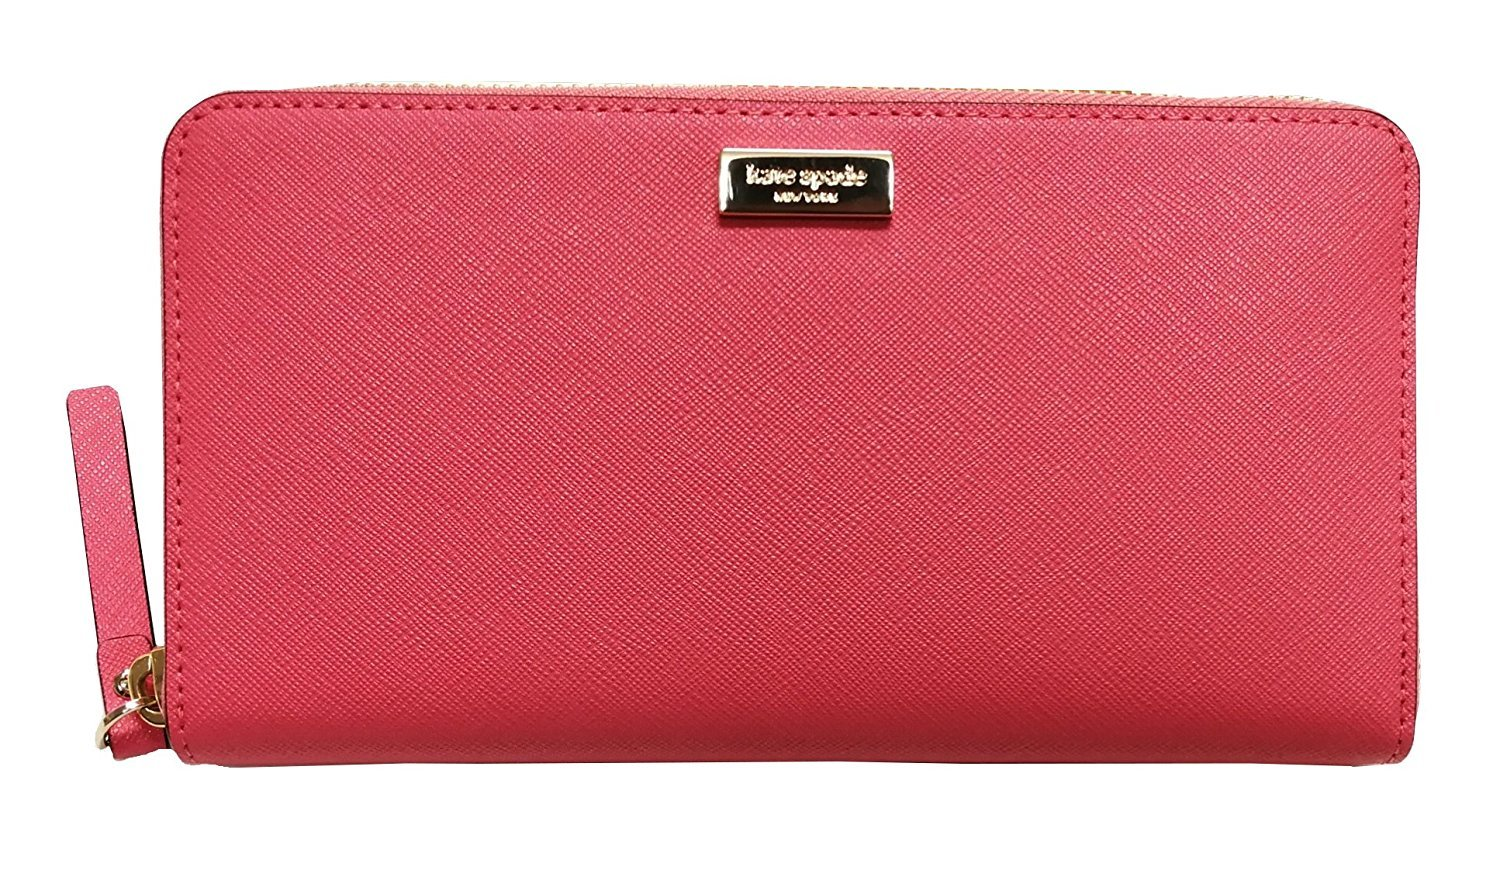 Kate Spade New York Neda Laurel Way Patent Leather Zip Around Wallet Warm Guava by Kate Spade New York